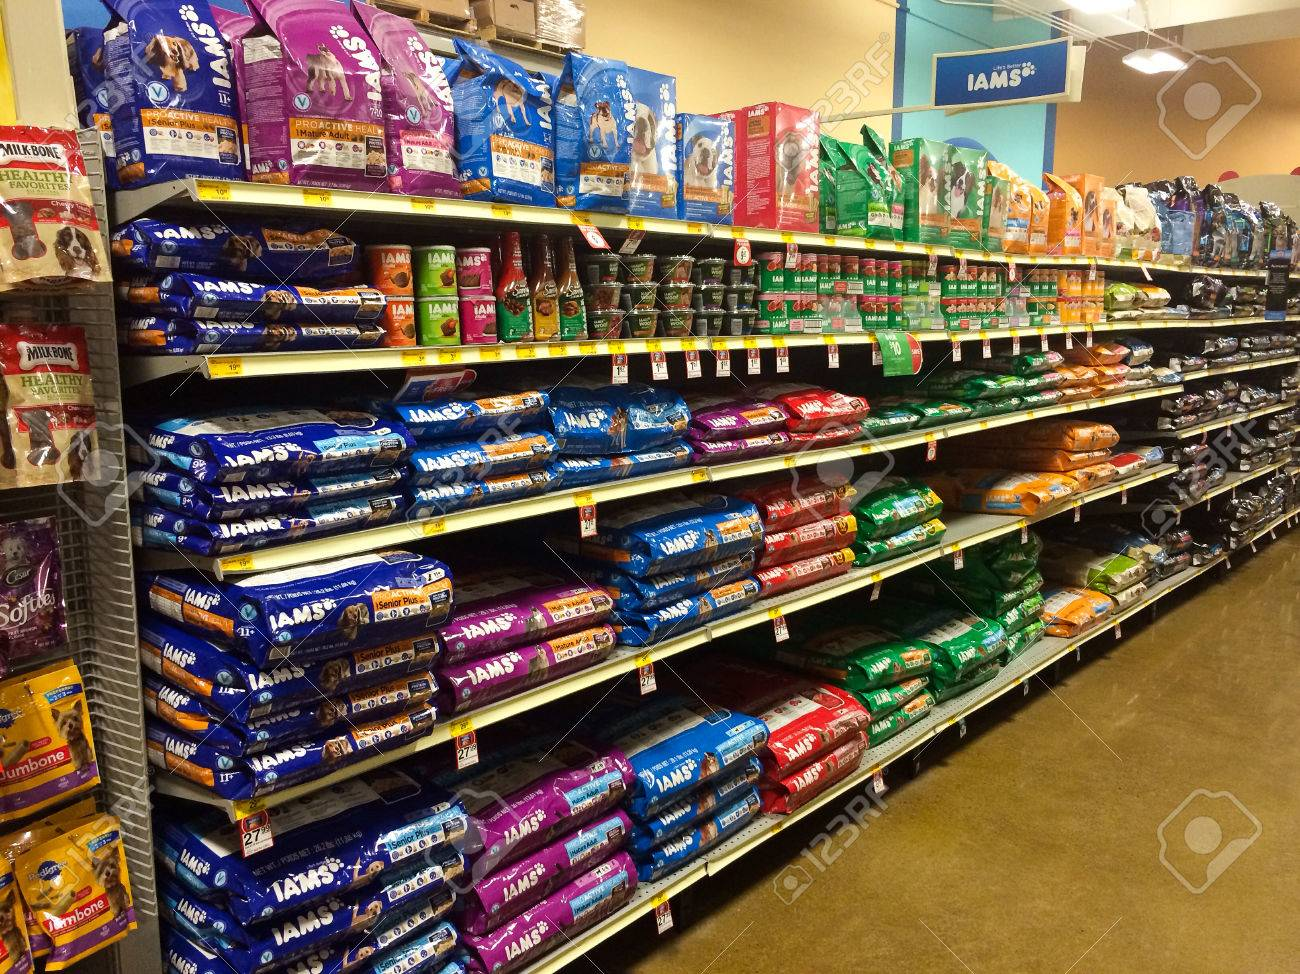 24957285-EUGENE-OR-DECEMBER-27-Iams-dog-food-selection-at-Petsmart-in-Eugene-OR-on-December-27-2013-Iams-is-a-Stock-Photo